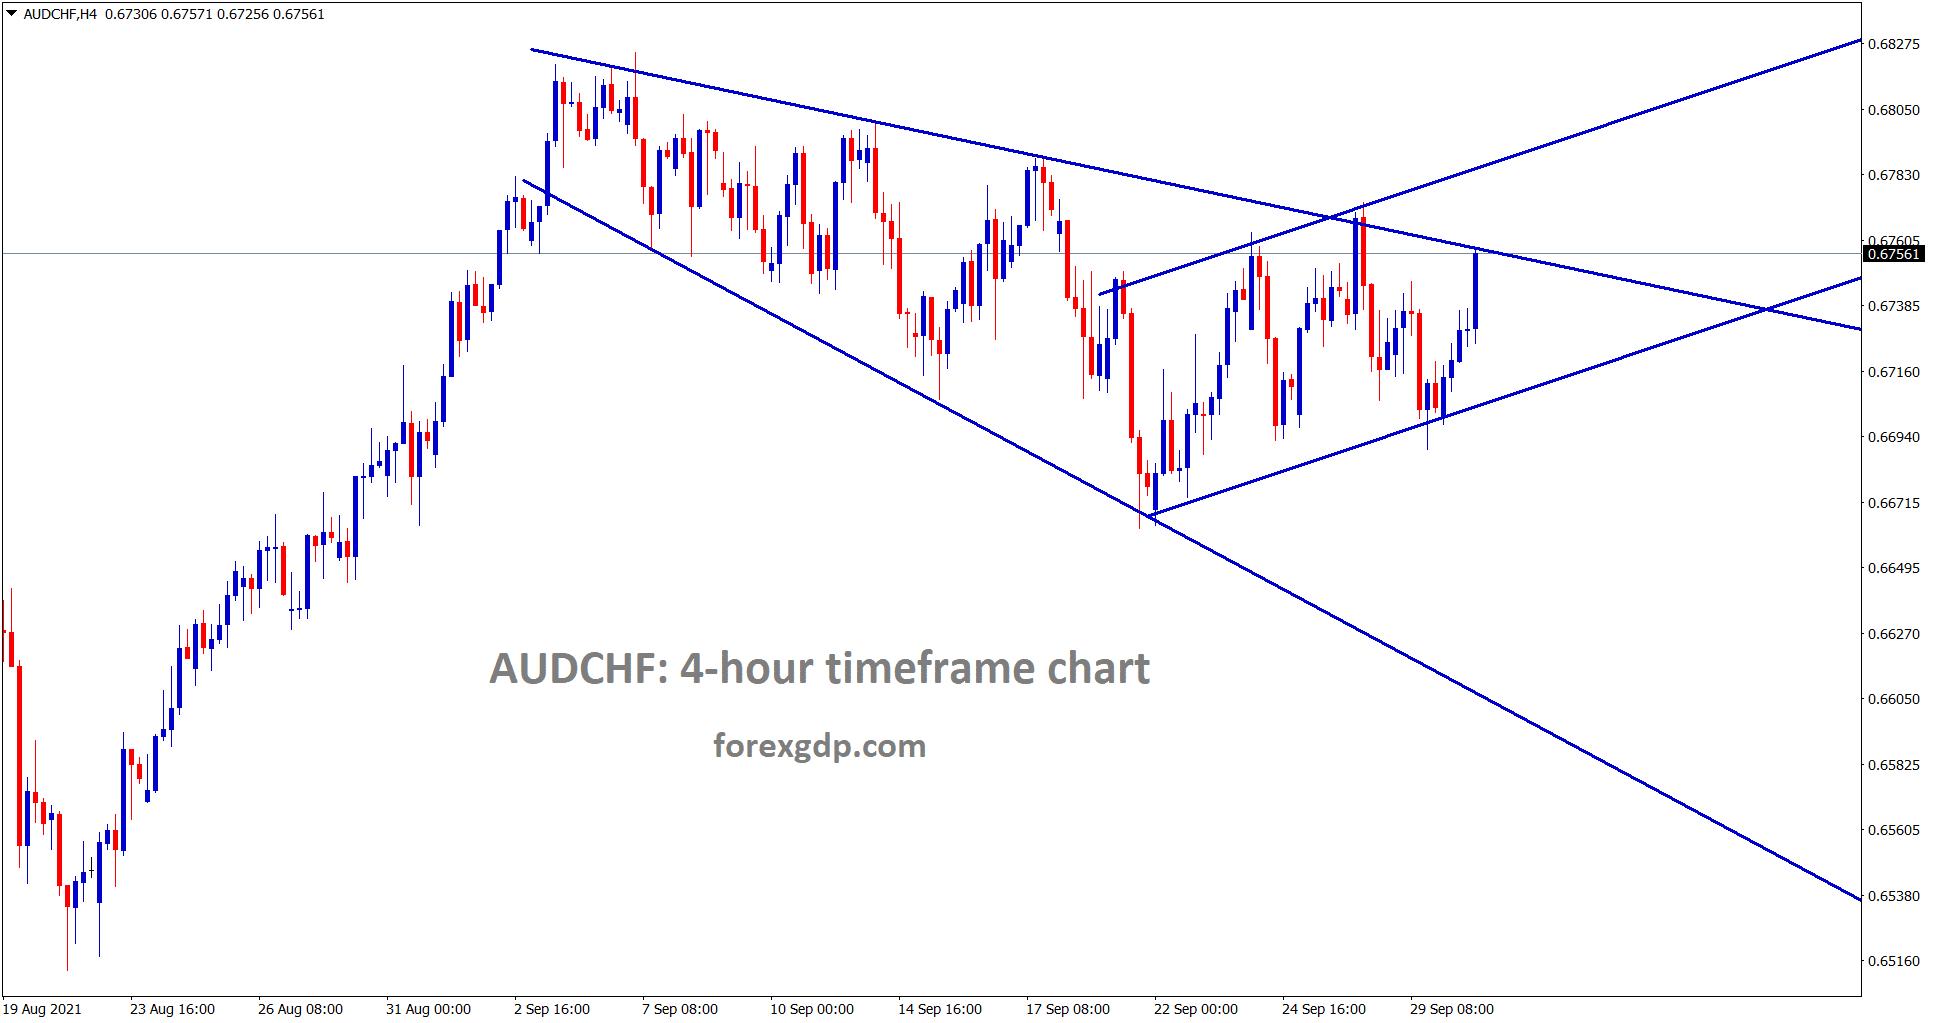 AUDCHF is still moving in a channel ranges wait for breakout